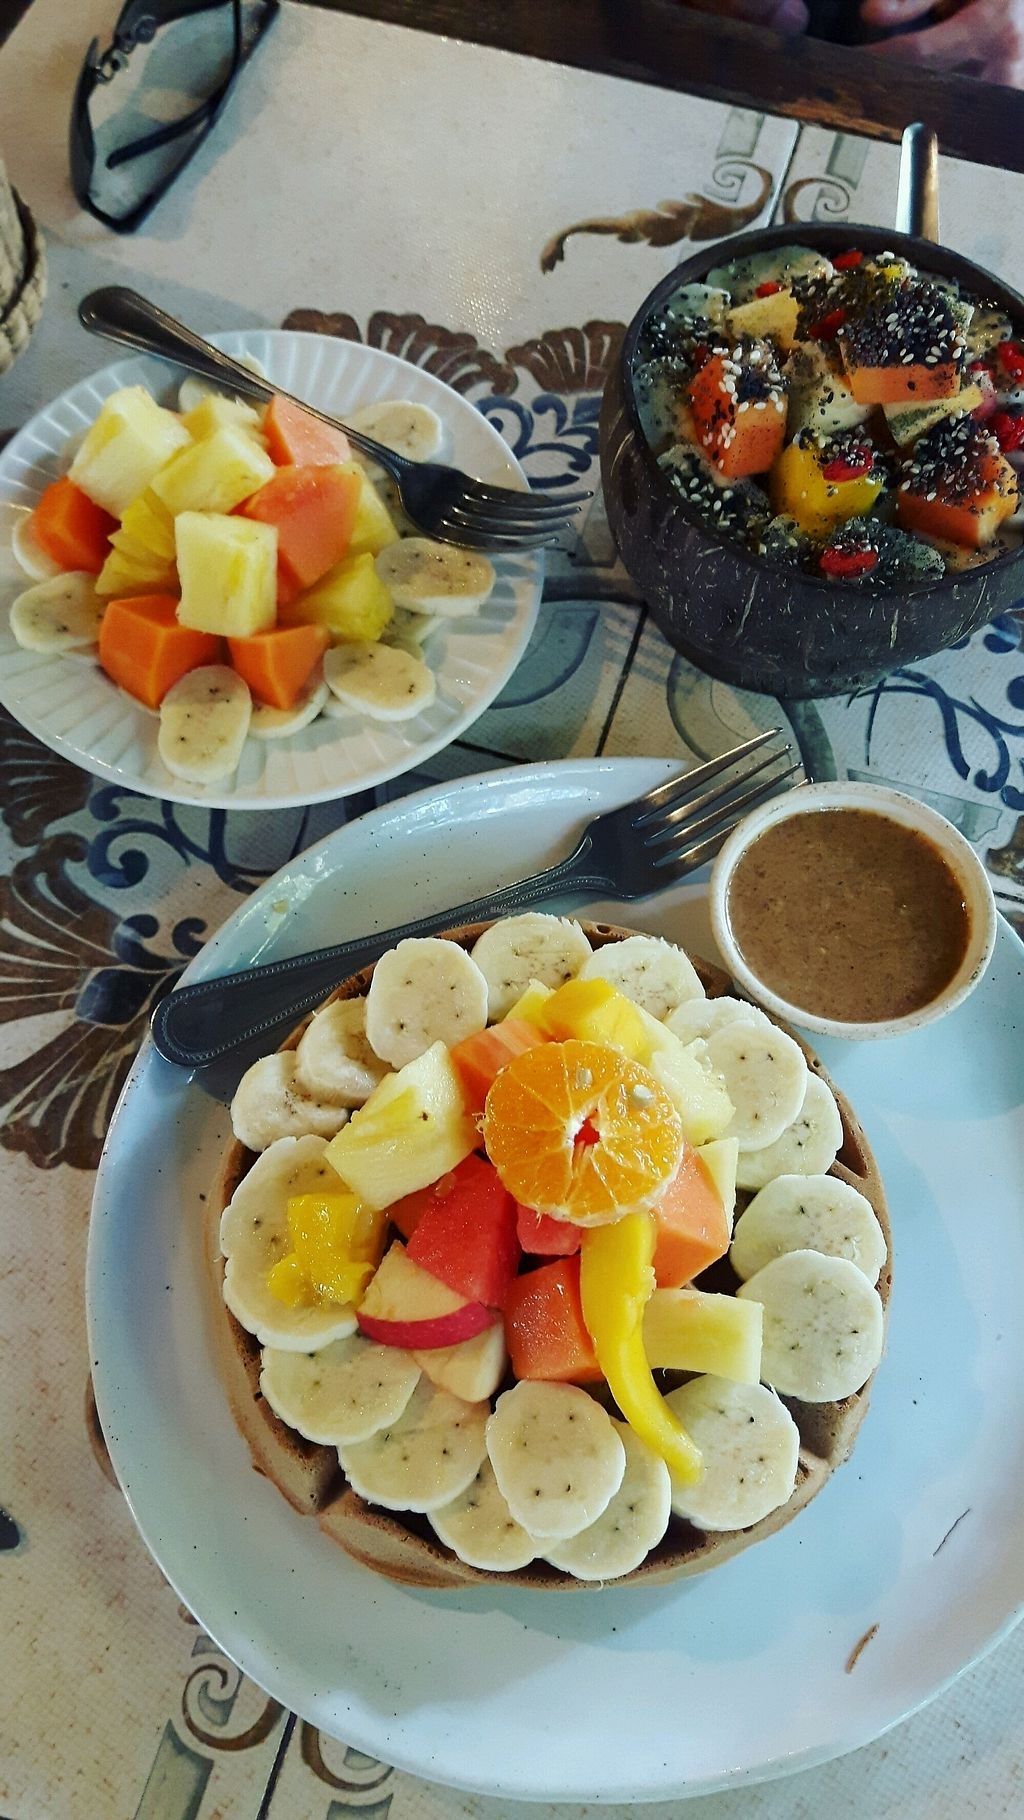 """Photo of Earth Tone  by <a href=""""/members/profile/CharityBosua"""">CharityBosua</a> <br/>Waffle with extra fruits and almond butter + Green Spirulina smoothiebowl <br/> February 18, 2018  - <a href='/contact/abuse/image/34371/360786'>Report</a>"""